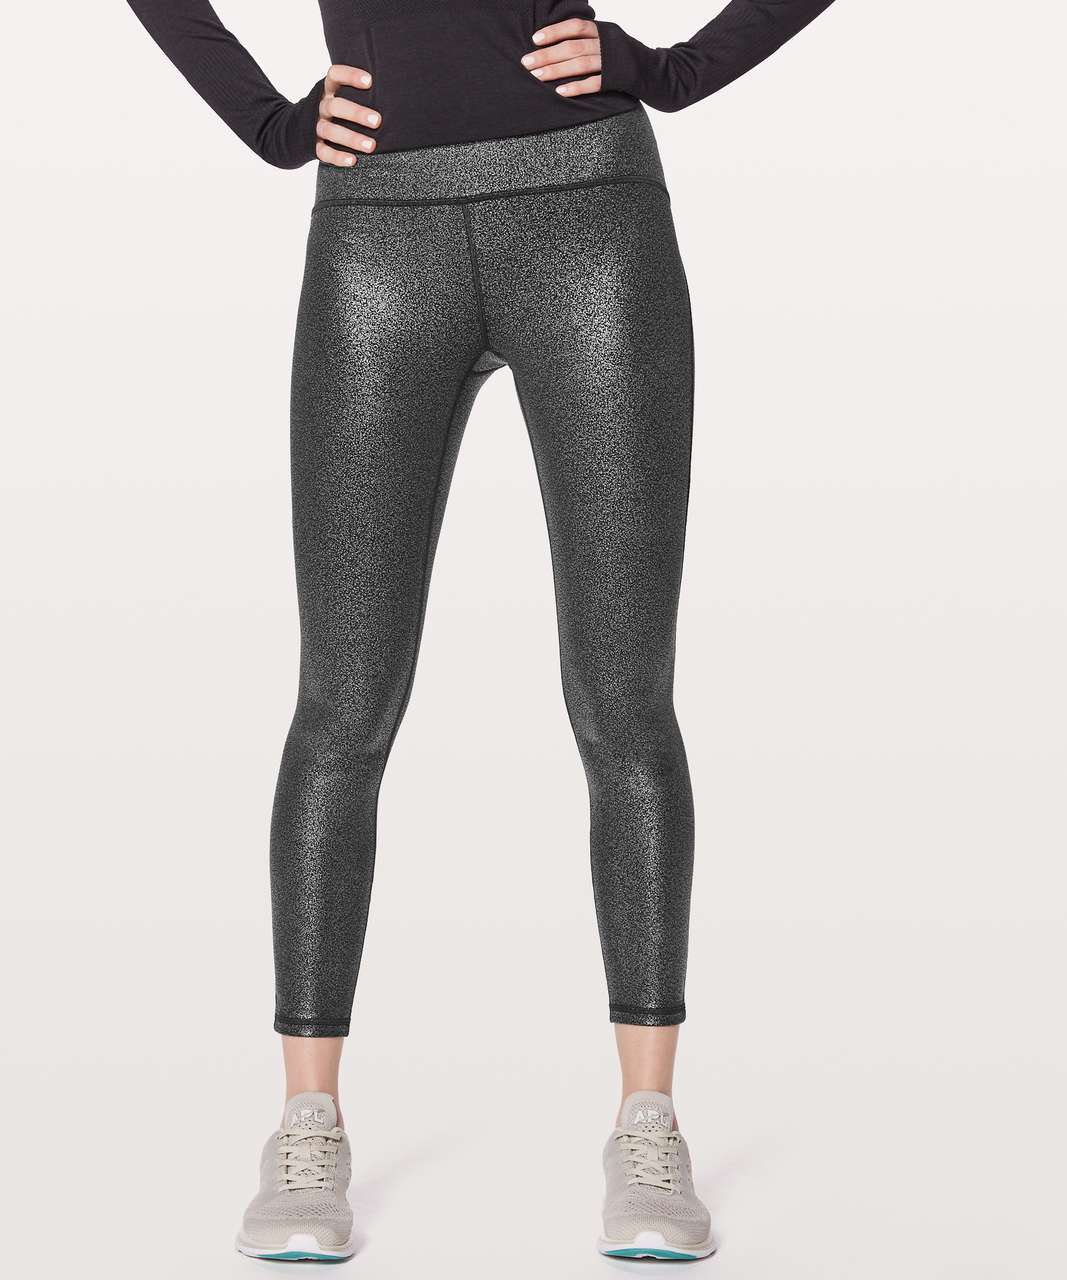 "Lululemon Train Times 7/8 Pant *25"" - Luminosity Foil Print Black Silver / Black"